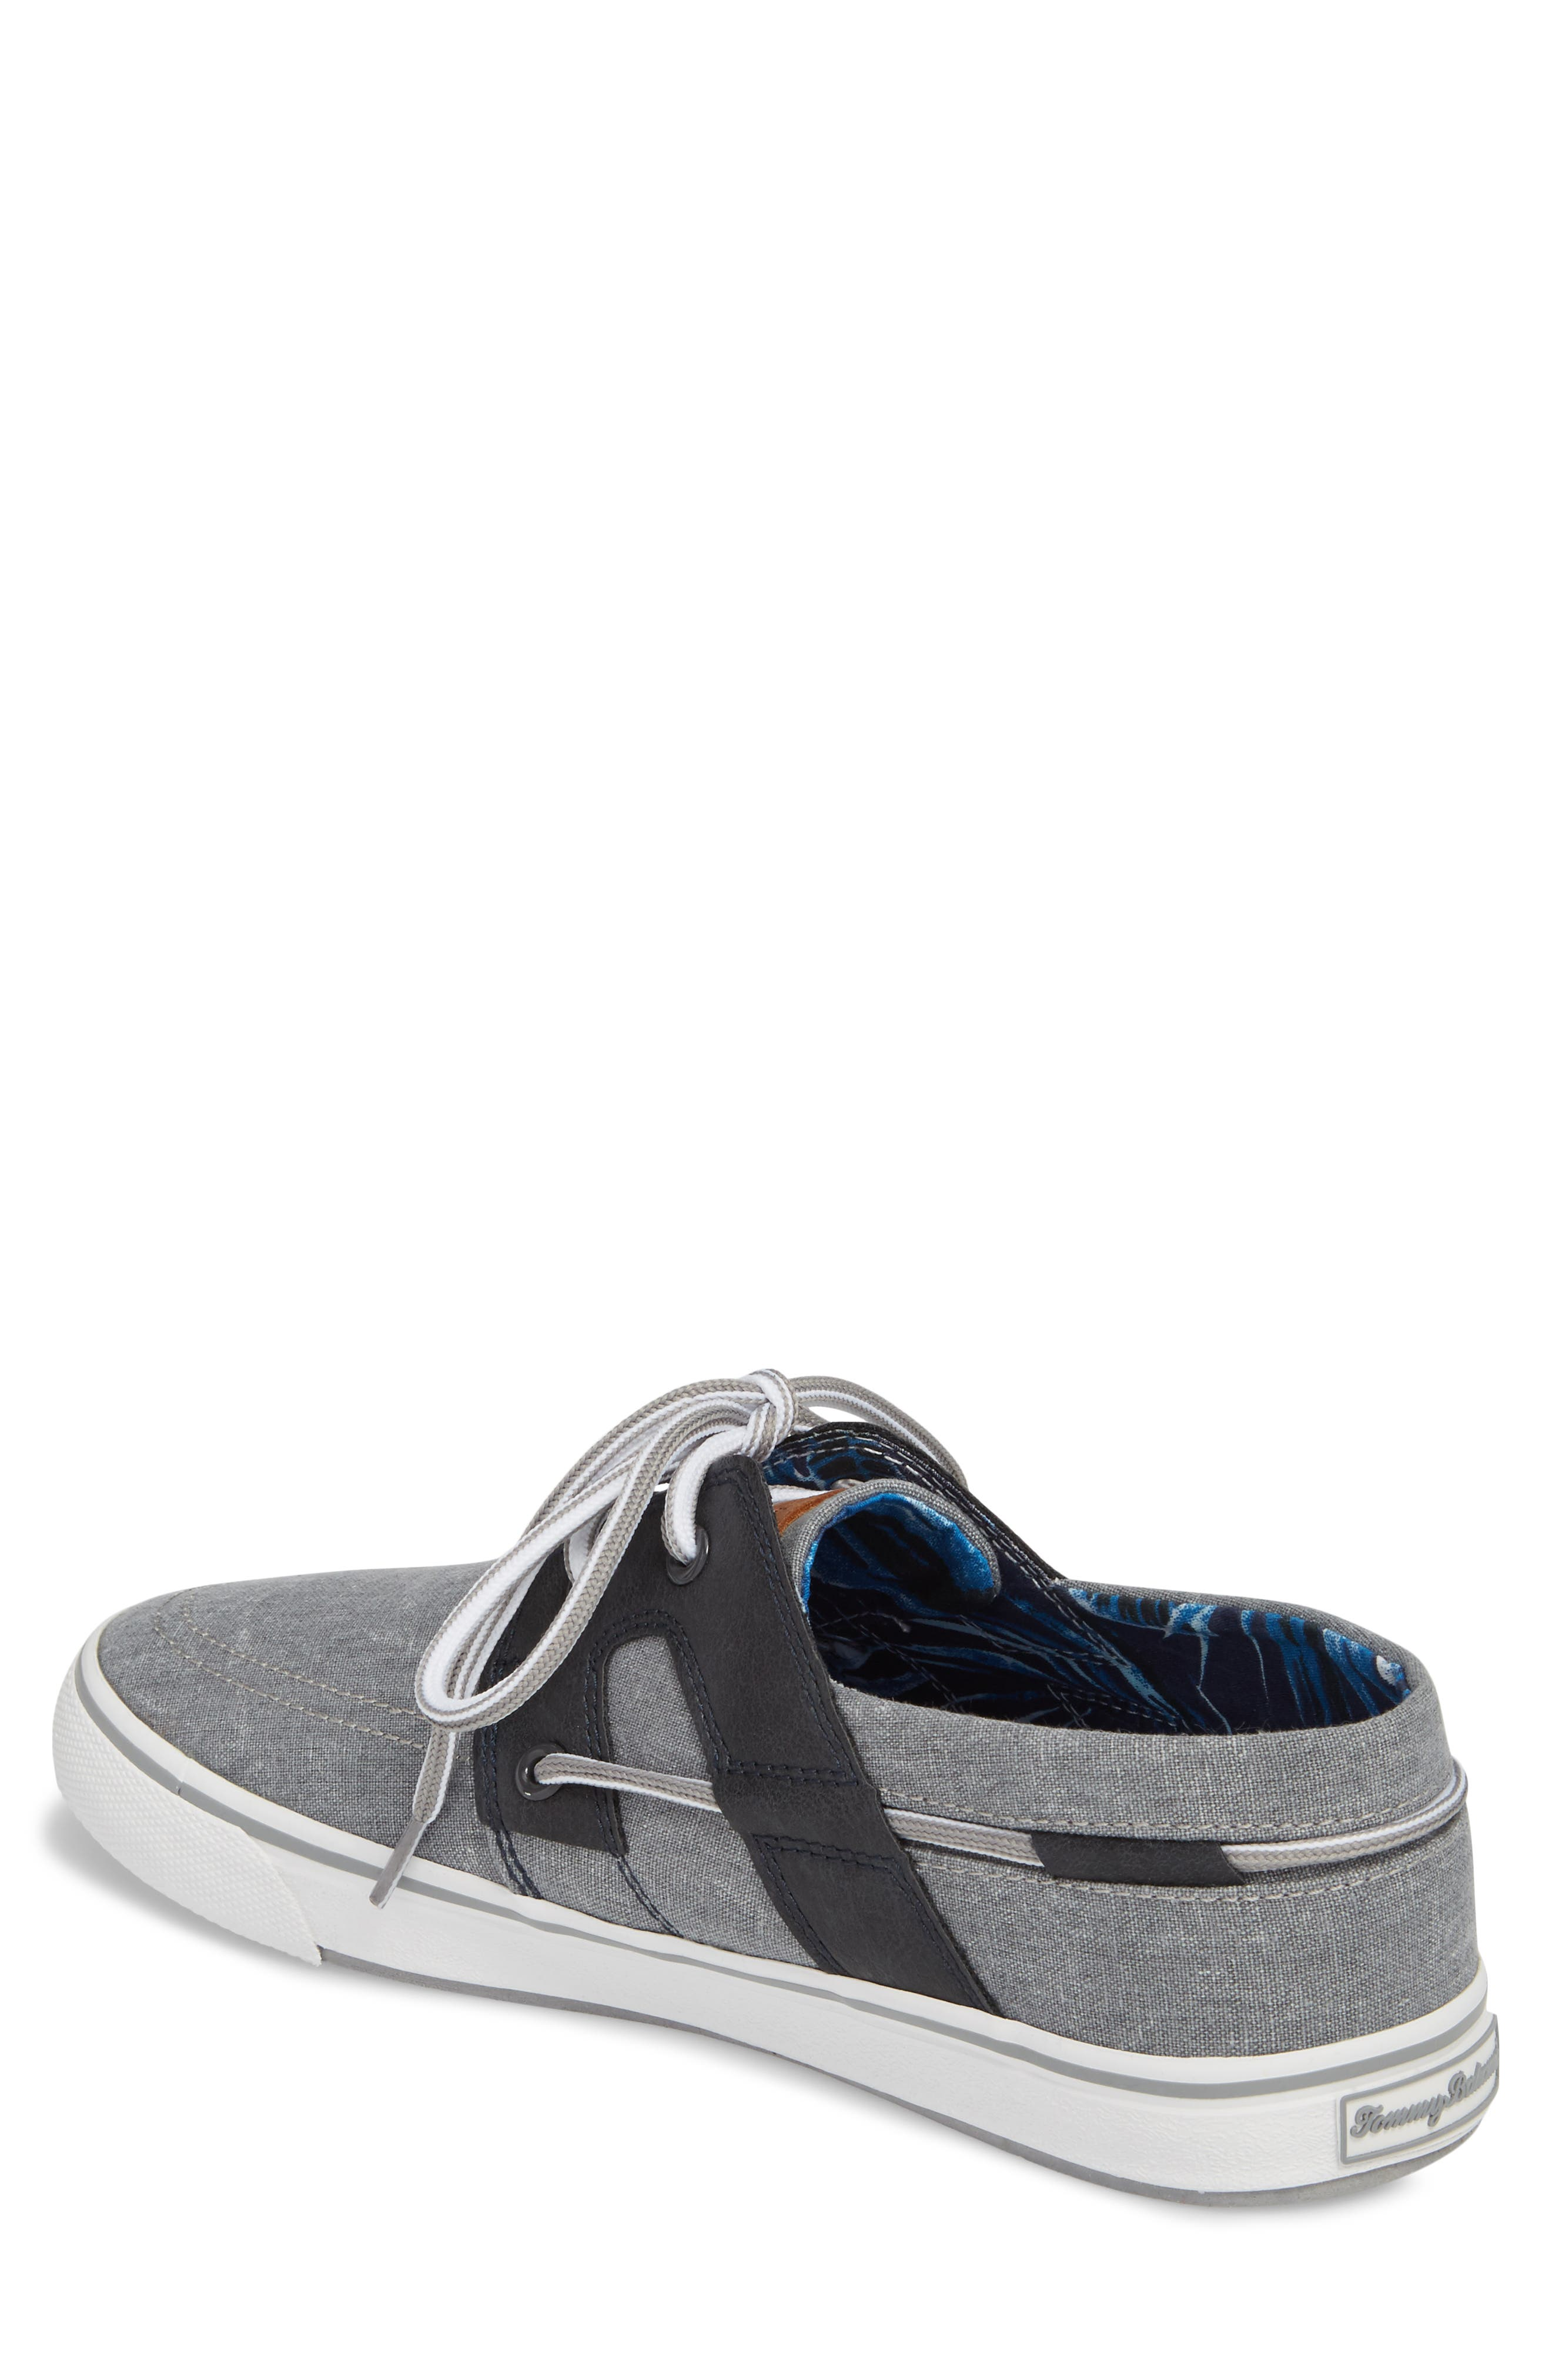 Stripe Breaker Sneaker,                             Alternate thumbnail 2, color,                             GREY/ BLACK LINEN/ LEATHER